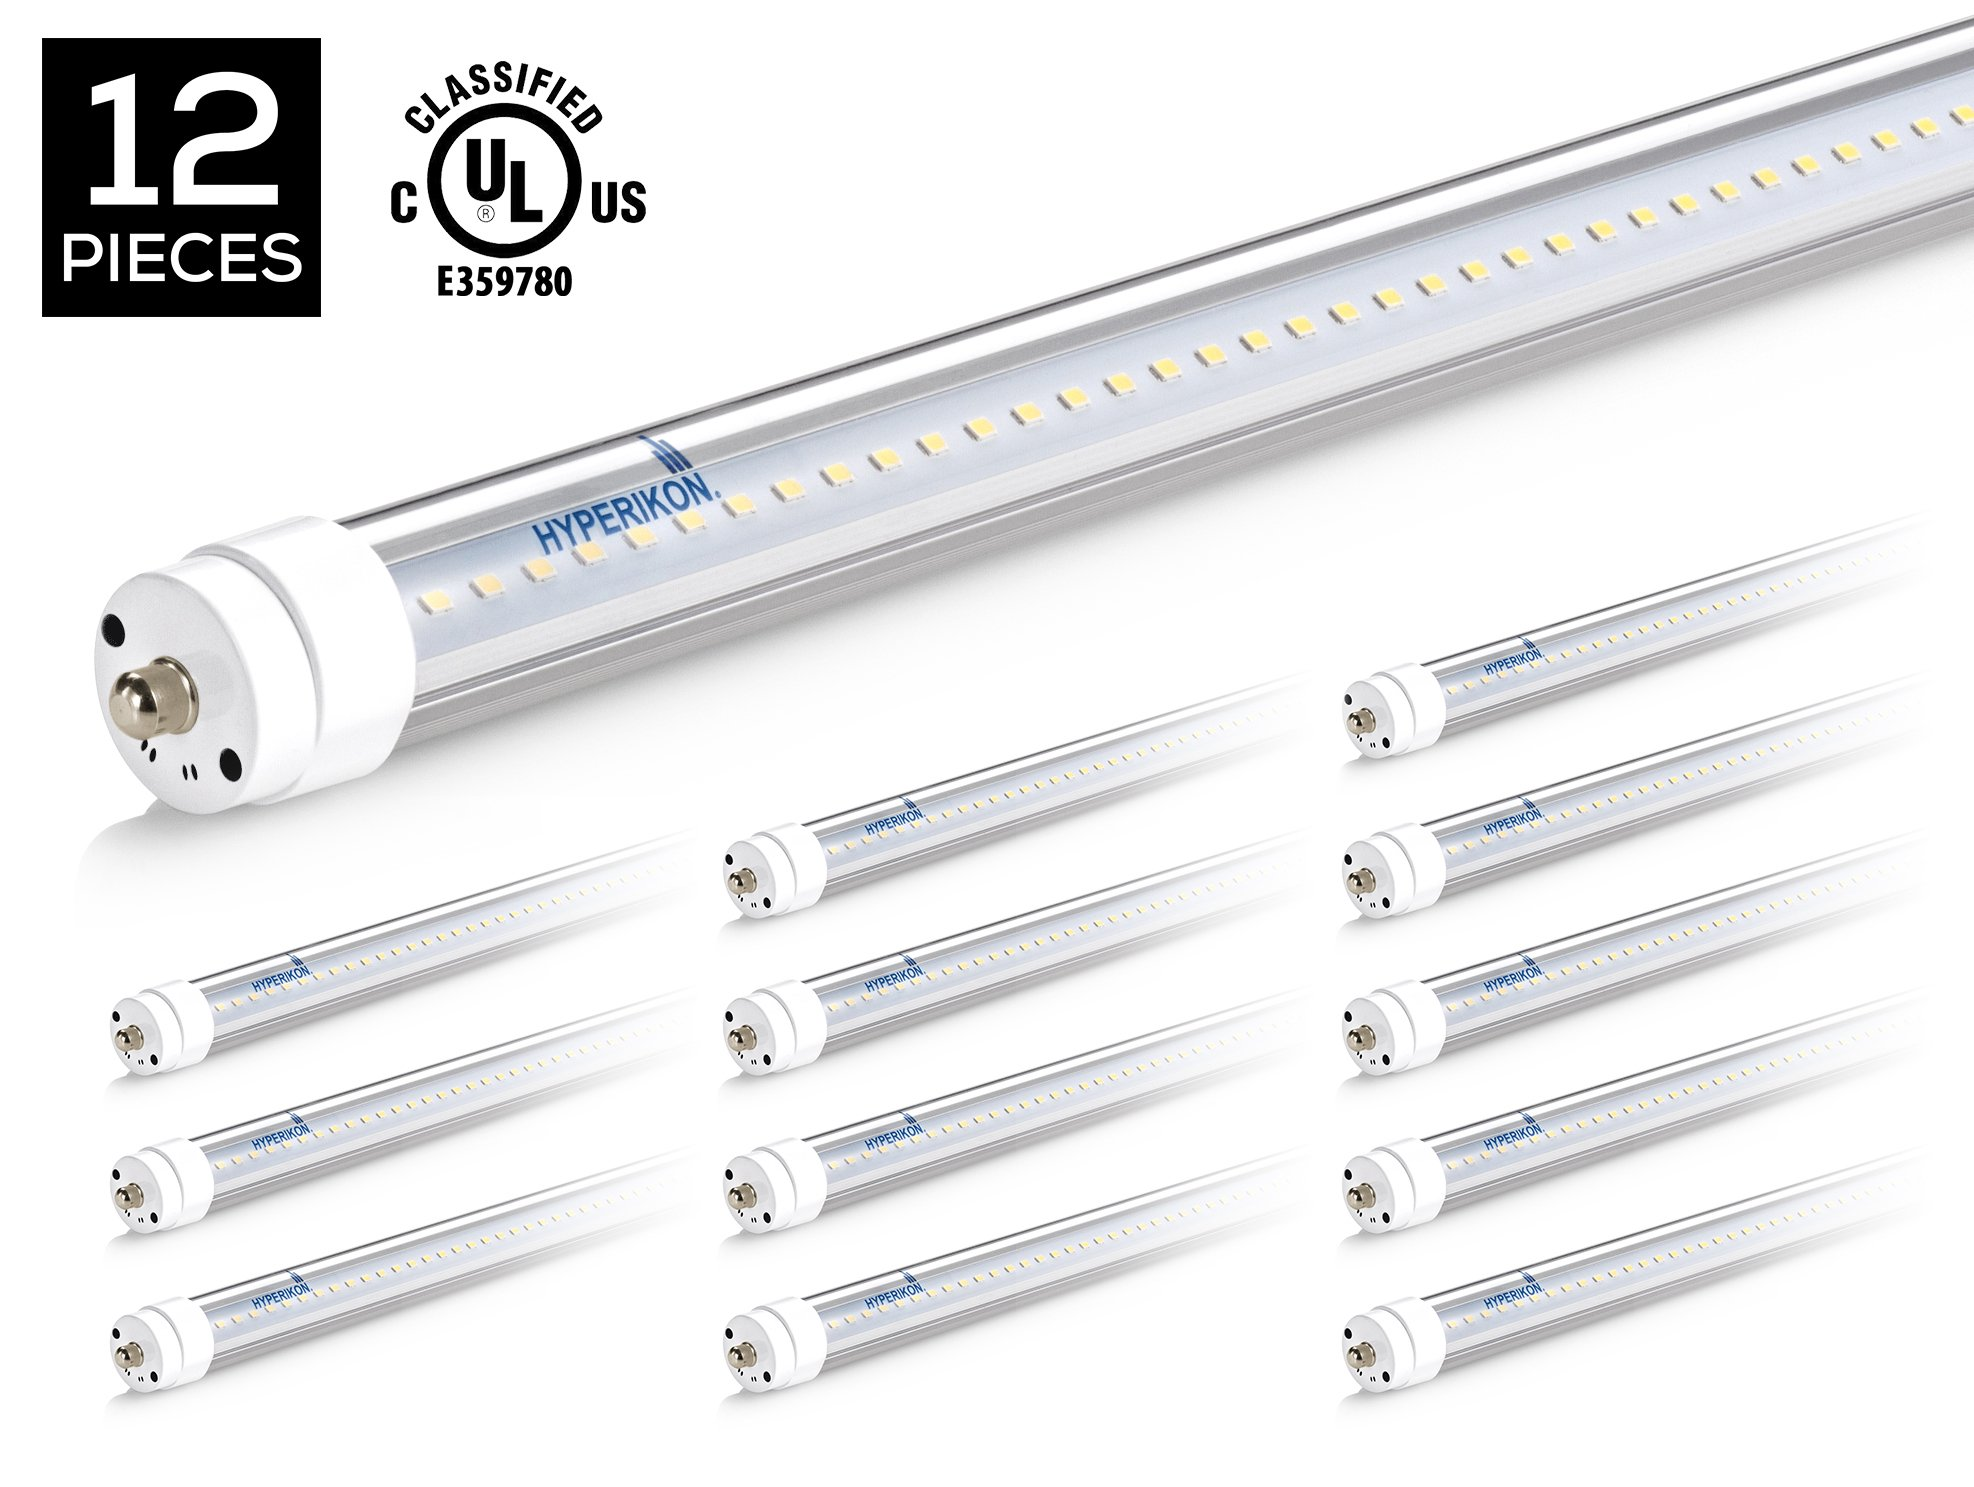 Hyperikon T8/T10/T12 LED Light Tube, 8FT, UL, 36W (75W equivalent), 5000K (Crystal White Glow), Clear Cover, Dual-Ended Power, Tombstones Included, 4300 Lumens - (Pack of 12)